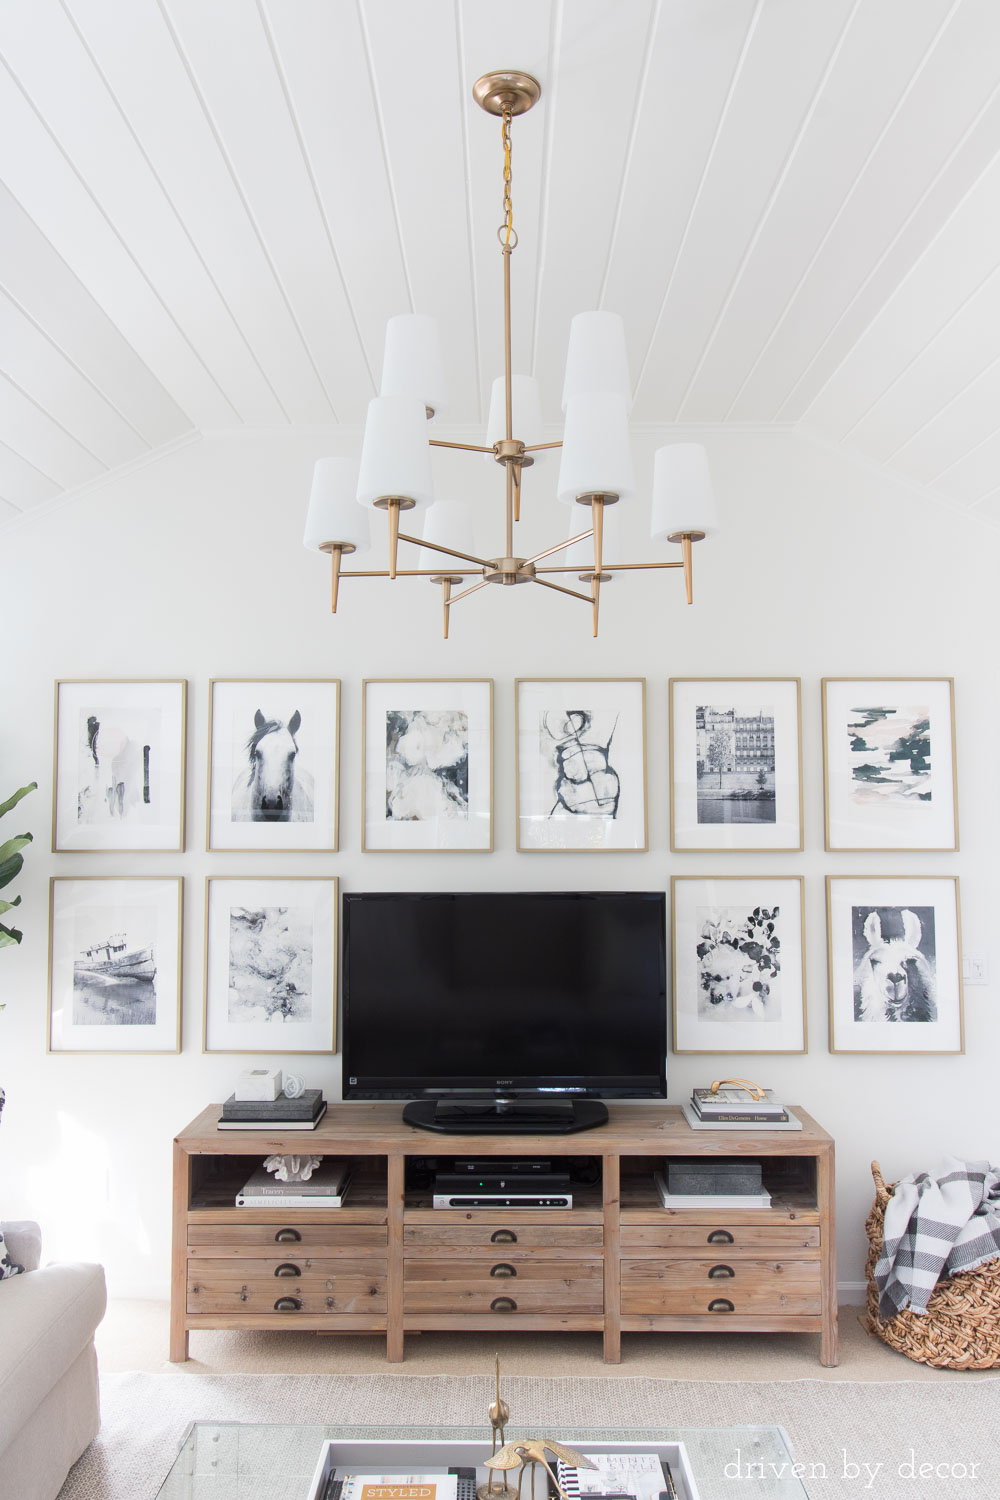 Love the art hung around the TV and that statement chandelier and wood media console!